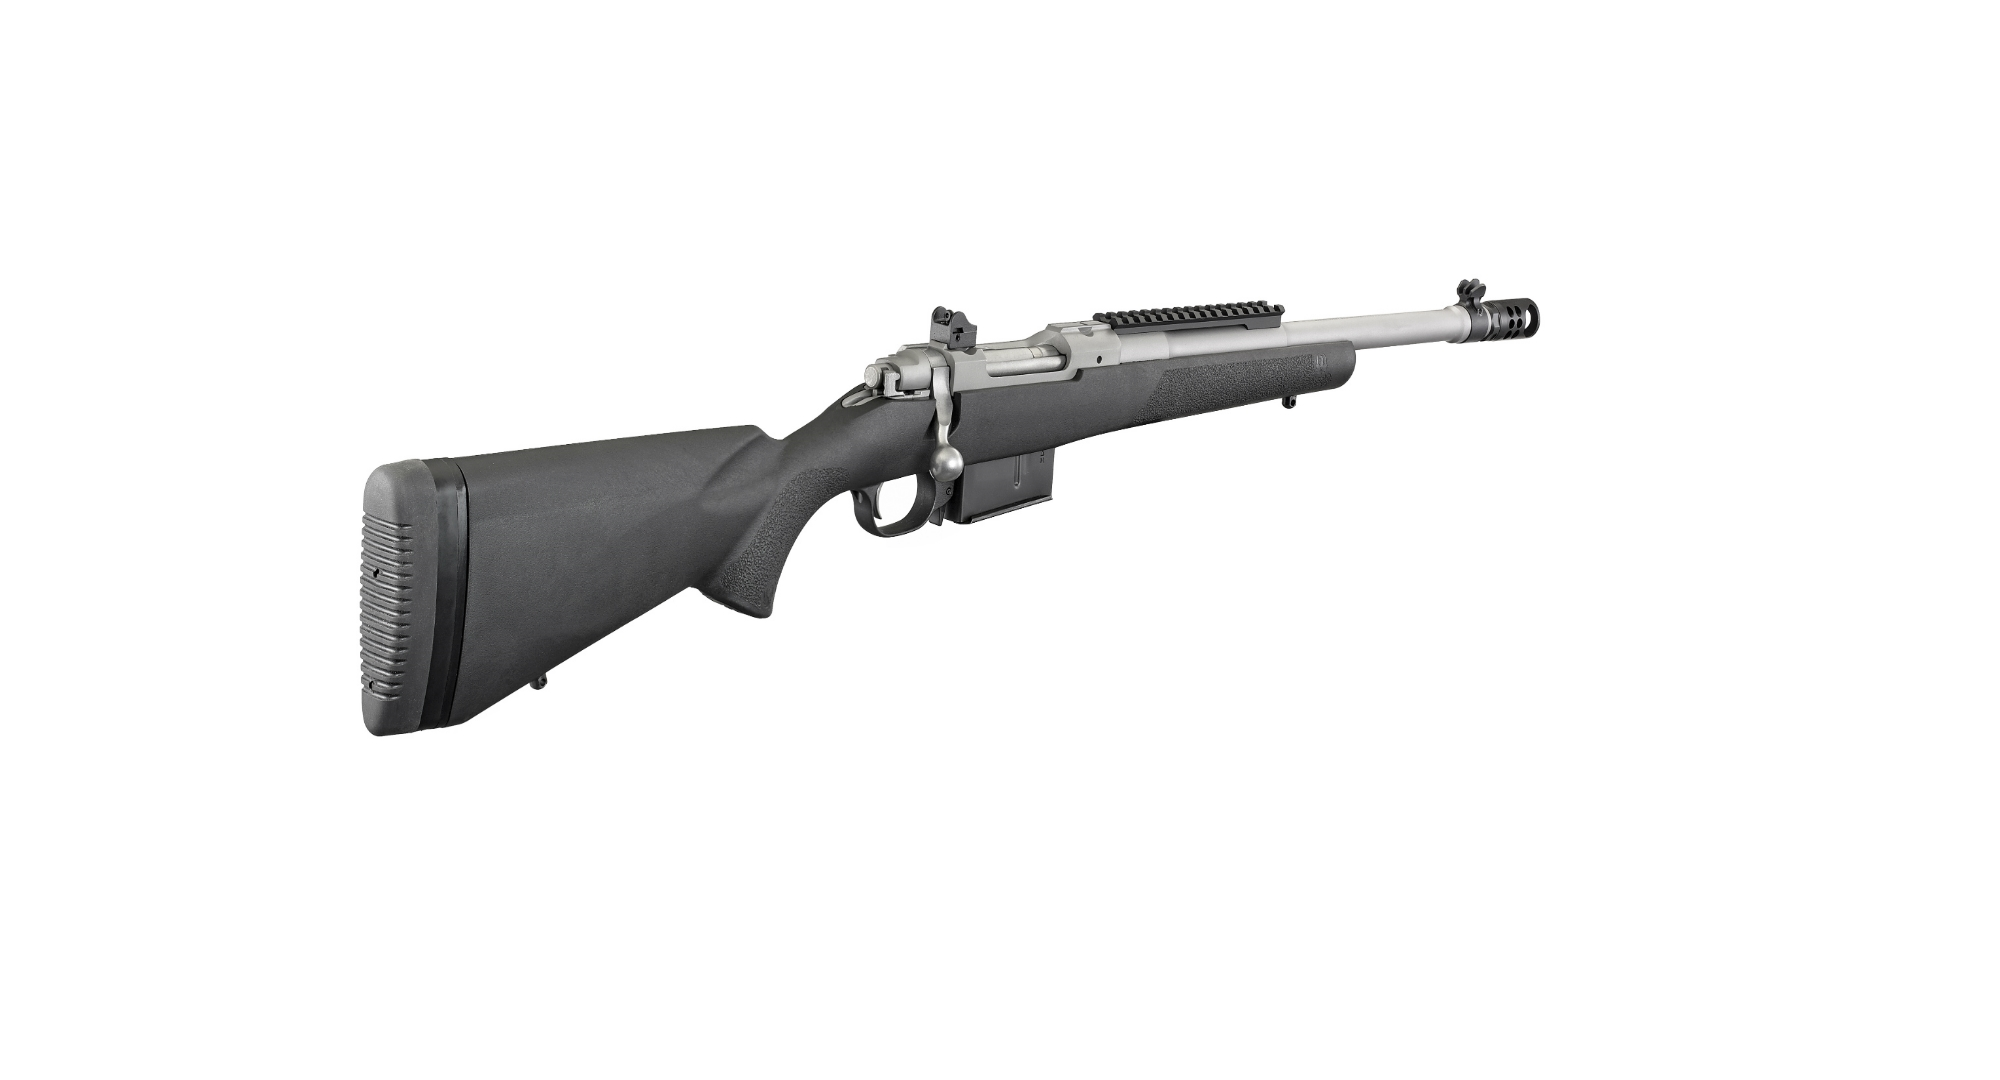 The Ruger Scout Rifle in .450 Bushmaster.